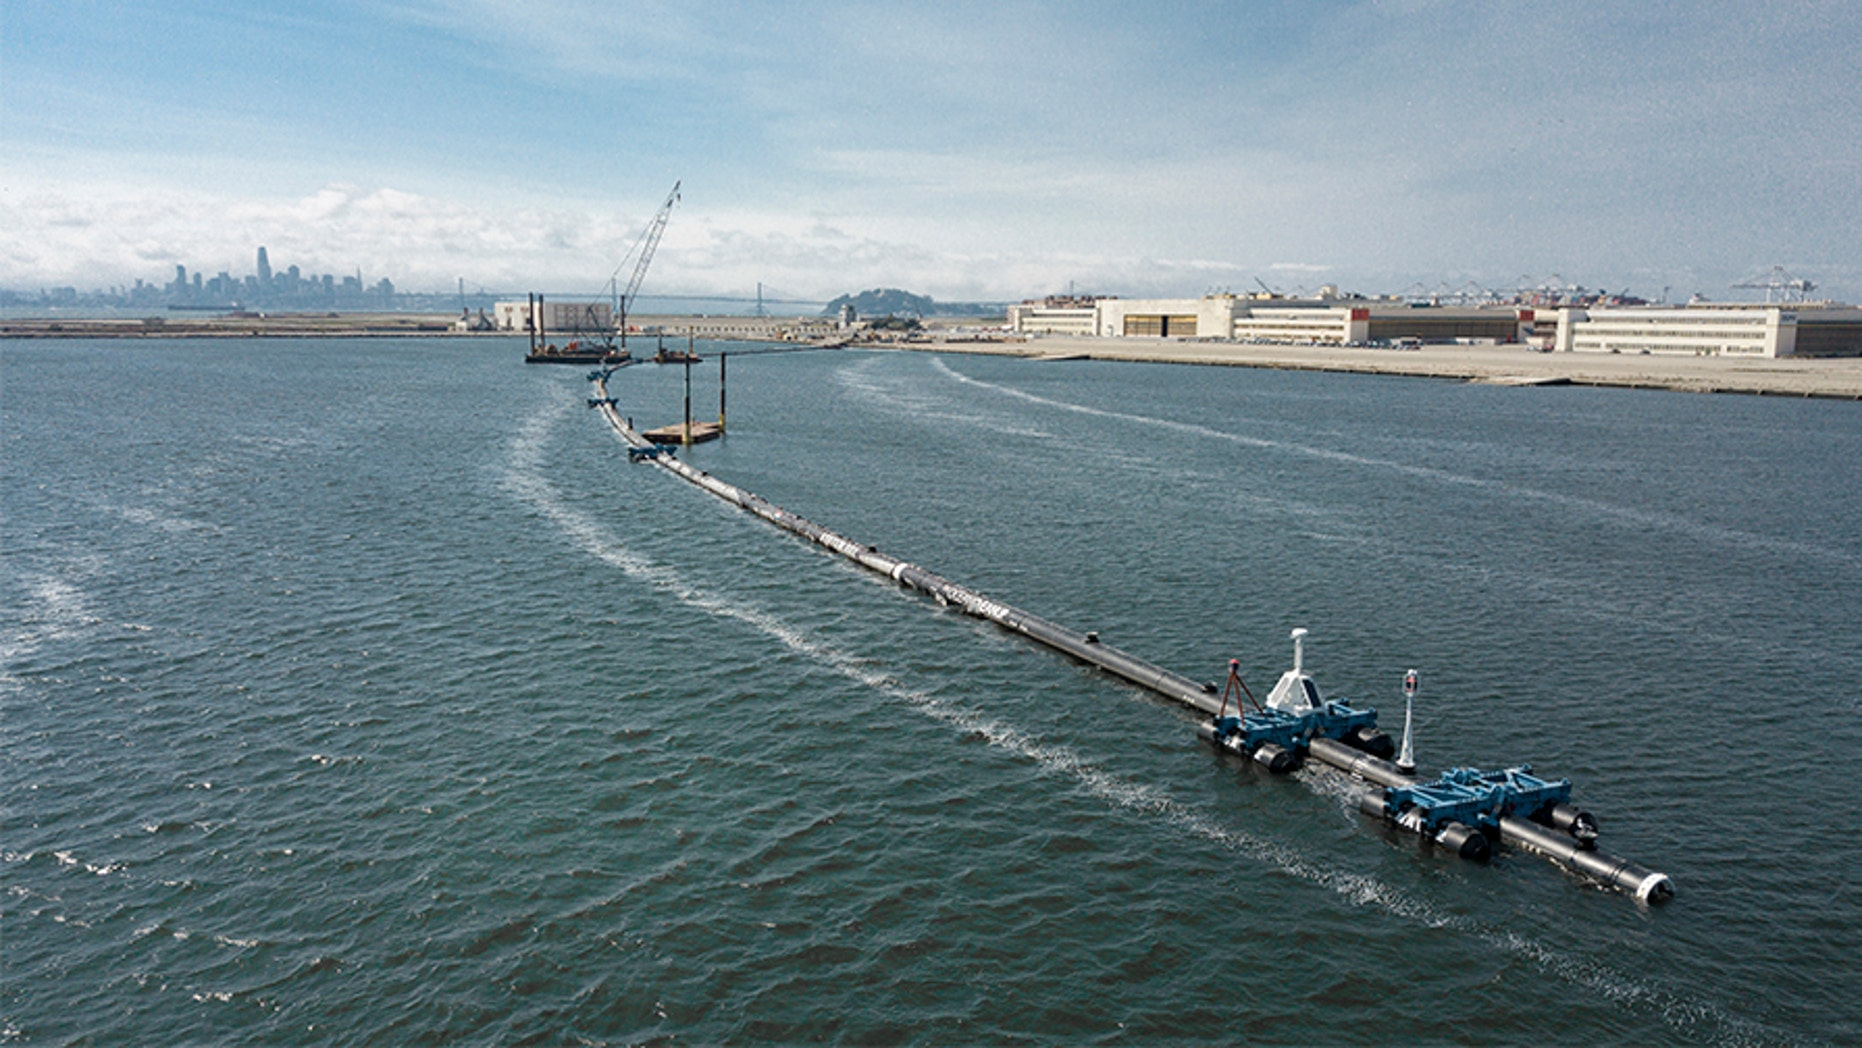 In this Monday, Aug. 27, 2018 photo provided by The Ocean Cleanup, a long floating boom that will be used to corral plastic litter in the Pacific Ocean is assembled in Alameda, Calif. Engineers will deploy a trash collection device to corral plastic litter floating between California and Hawaii in an attempt to clean up the world's largest garbage patch. The 2,000-foot long floating boom will be towed Saturday, Sept. 8, 2018, from San Francisco to the Great Pacific Garbage Patch, an island of trash twice the size of Texas.